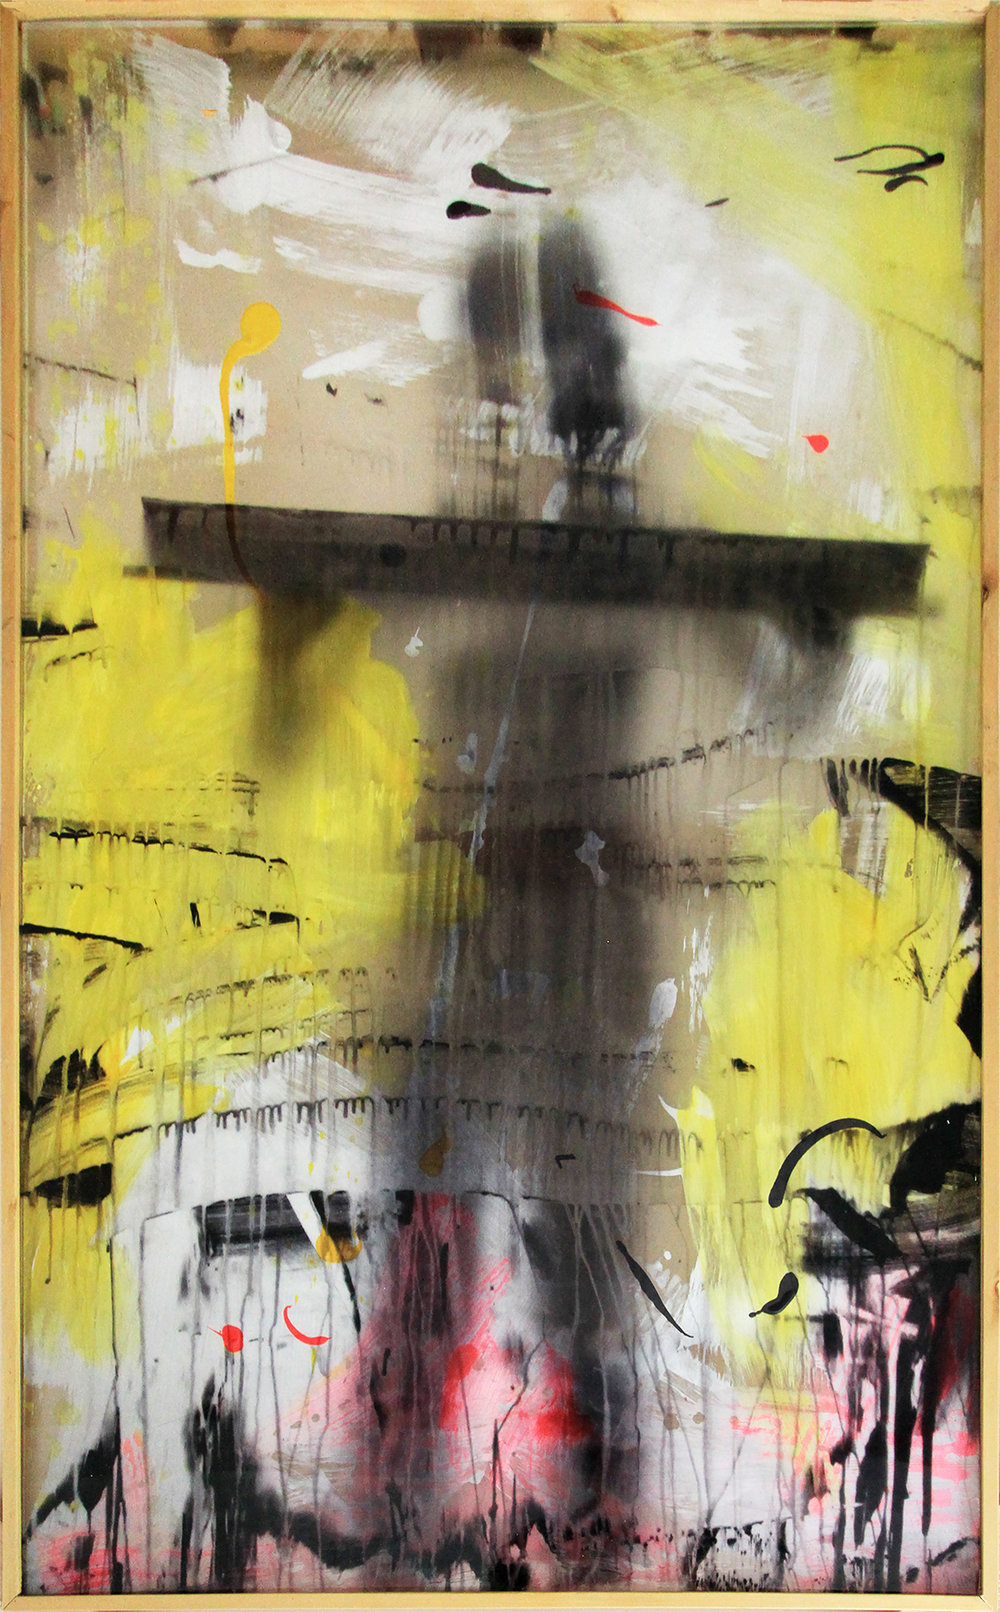 Erika Ernawan,  Figure on Yellow , 2019, Digital print and acrylic on Perspex, 90 x 145 cm